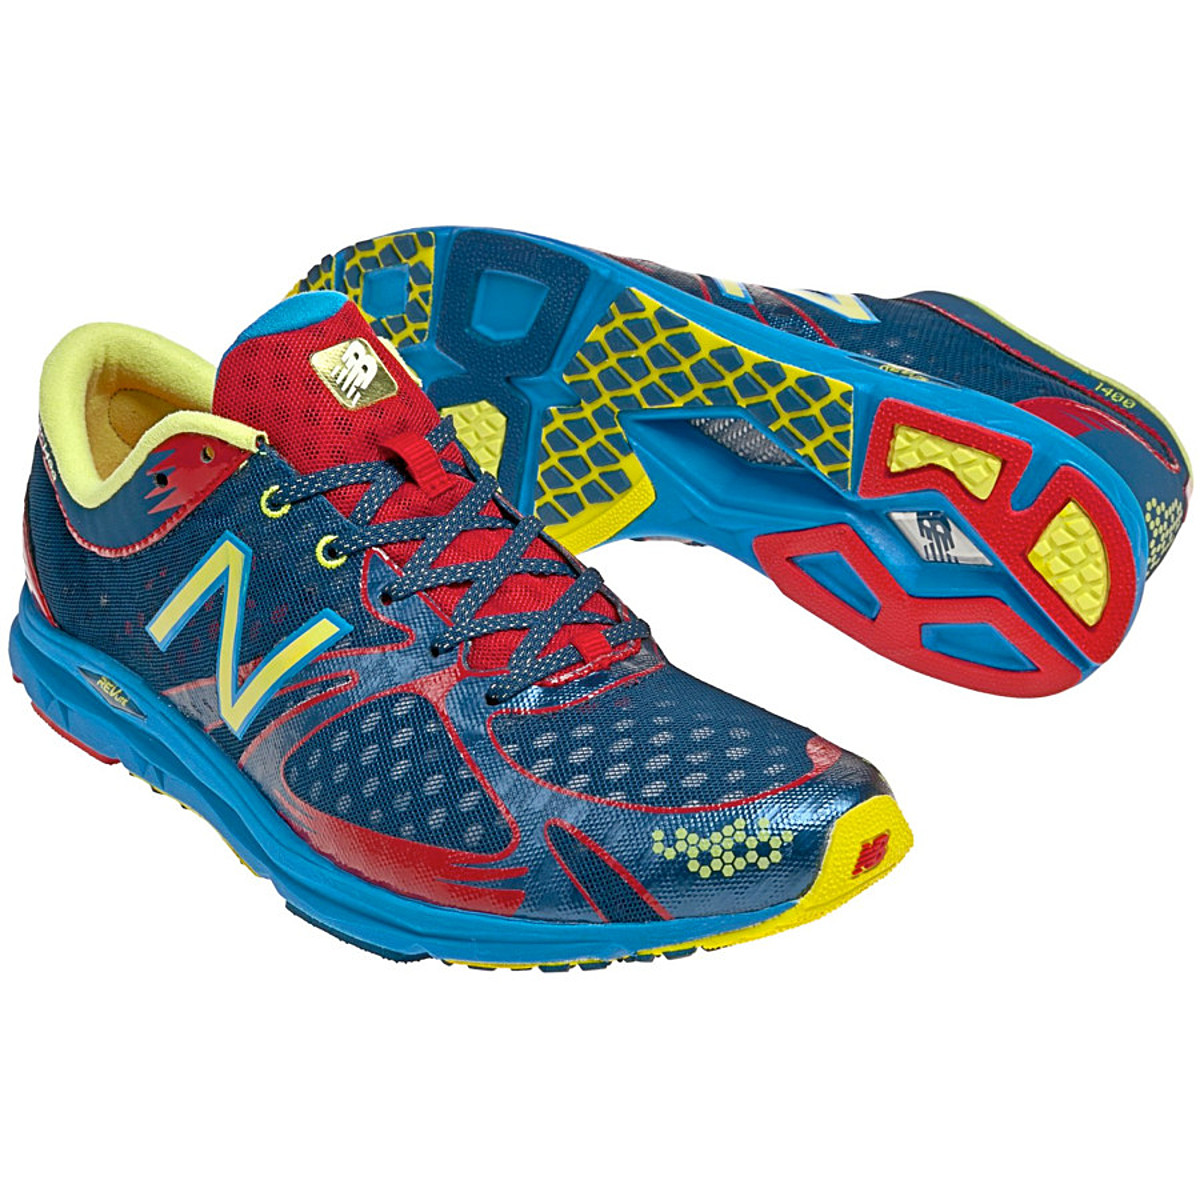 New Balance 1400 Running Shoe